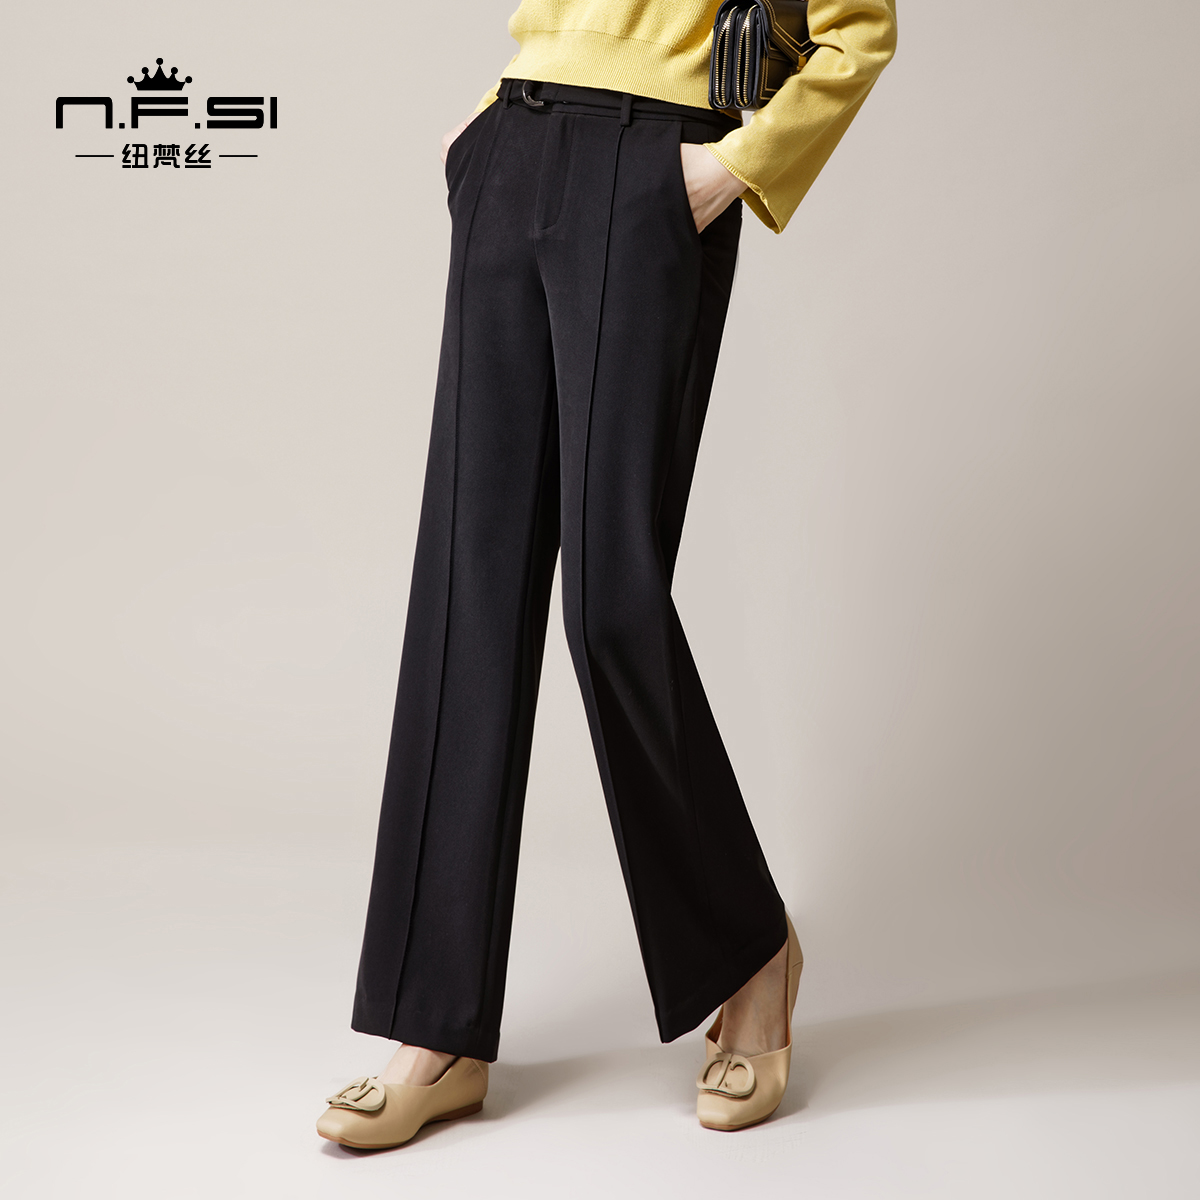 Newvence straight pants womens 2020 new autumn and winter commuter suit